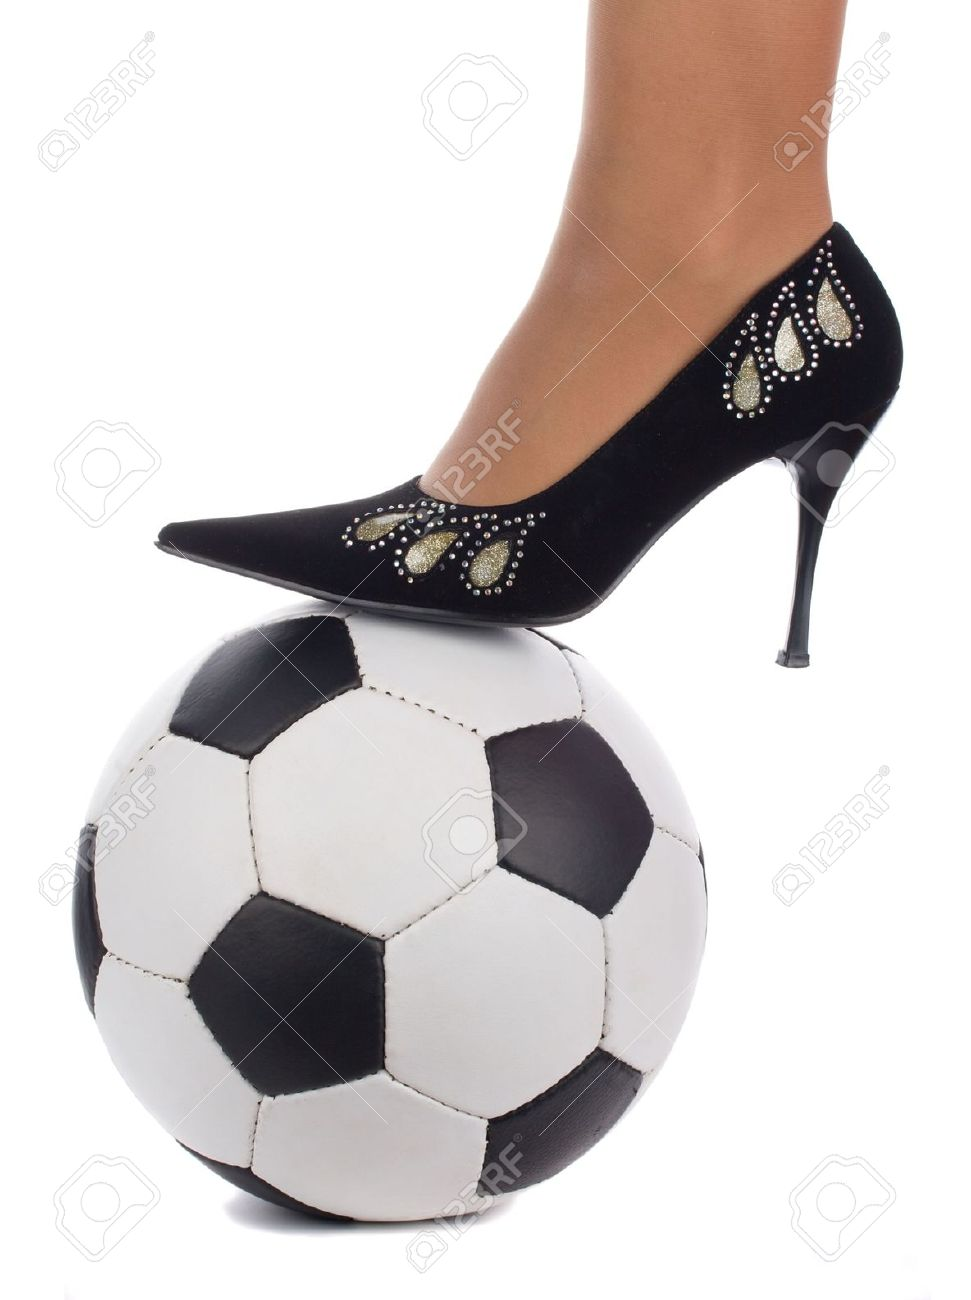 tbol for woman